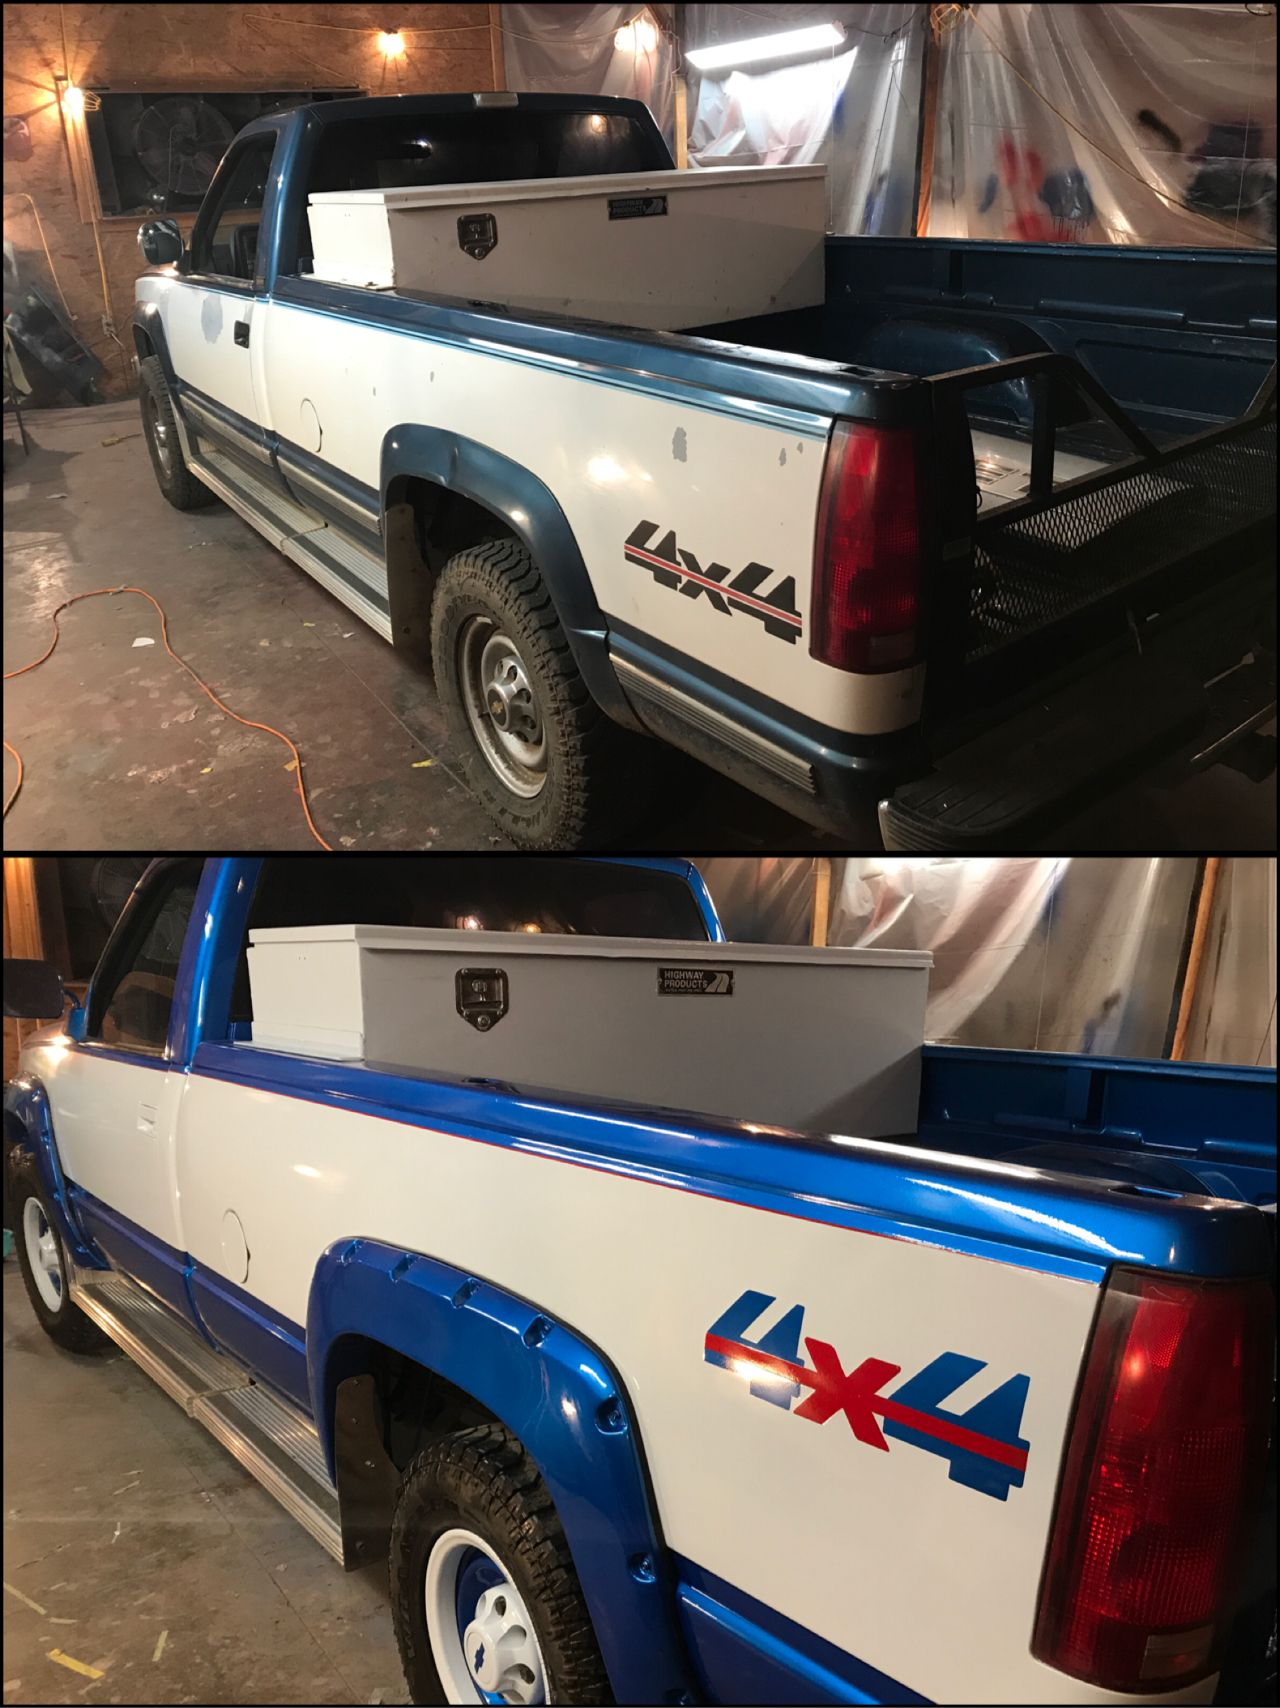 Custom Paint Job Chevy Silverado Has Red Pinstripe And All Inlaid Truck Photos Graphics By Jason Perry Intense Metallic Blue With Winter White